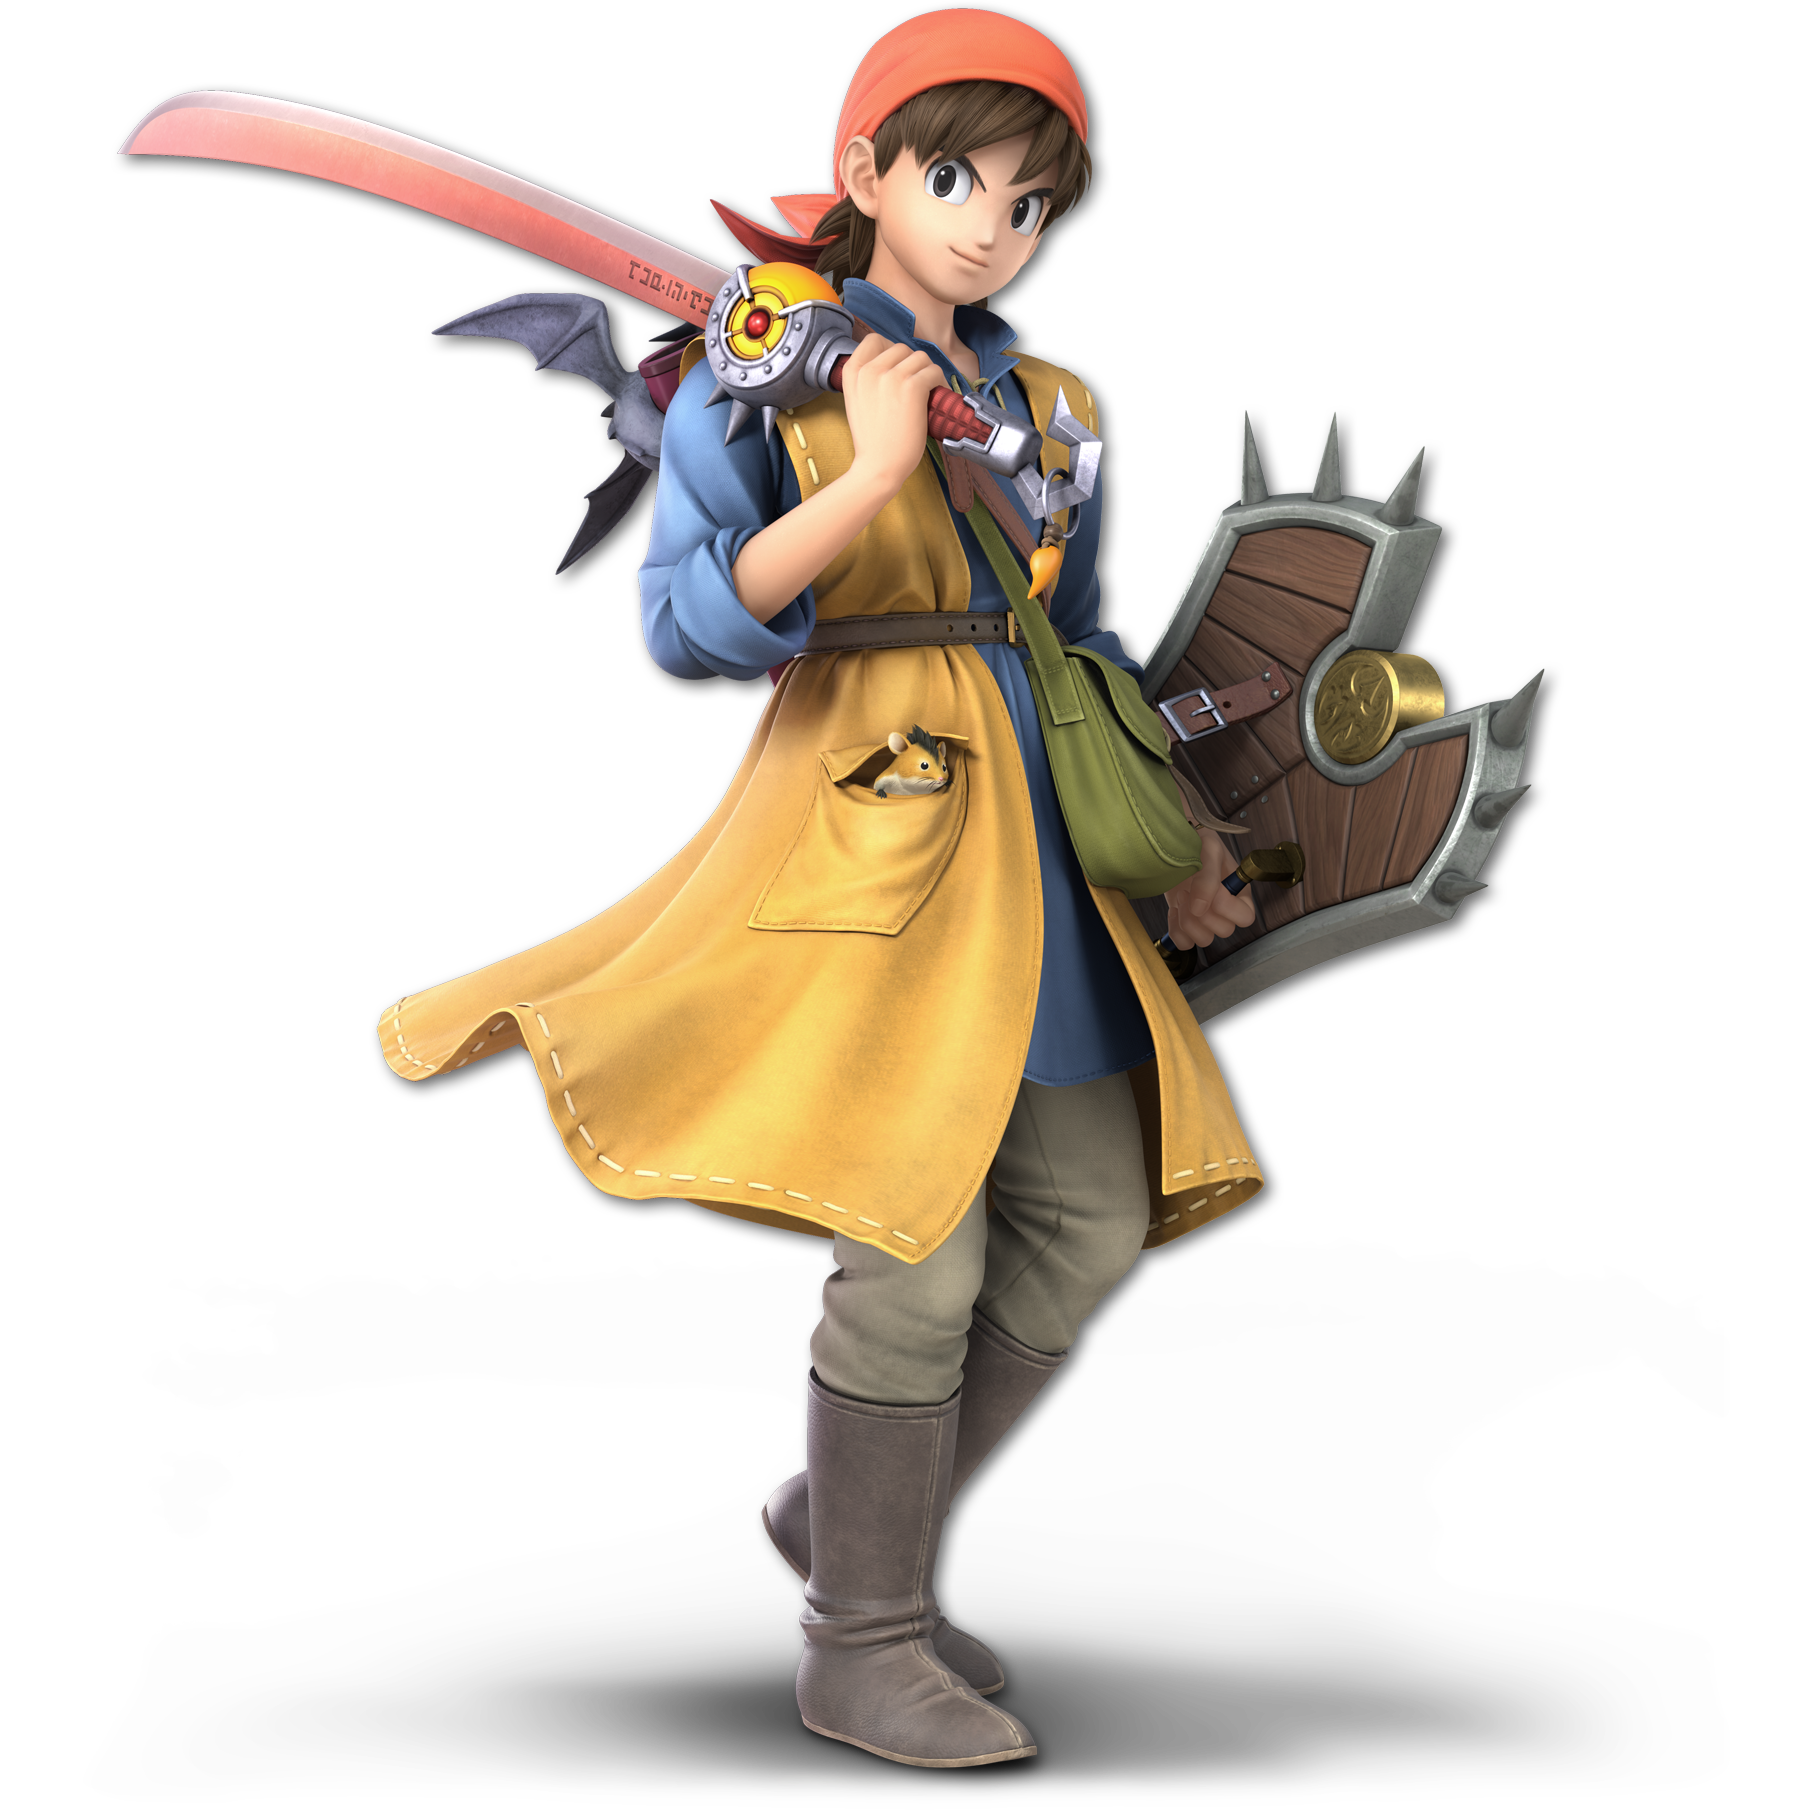 Hero Dragon Quest Viii Dragon Quest Wiki Fandom Dragon quest xi has a number of clothes and outfits in the game, allowing you to change the appearance of each character in your party. hero dragon quest viii dragon quest